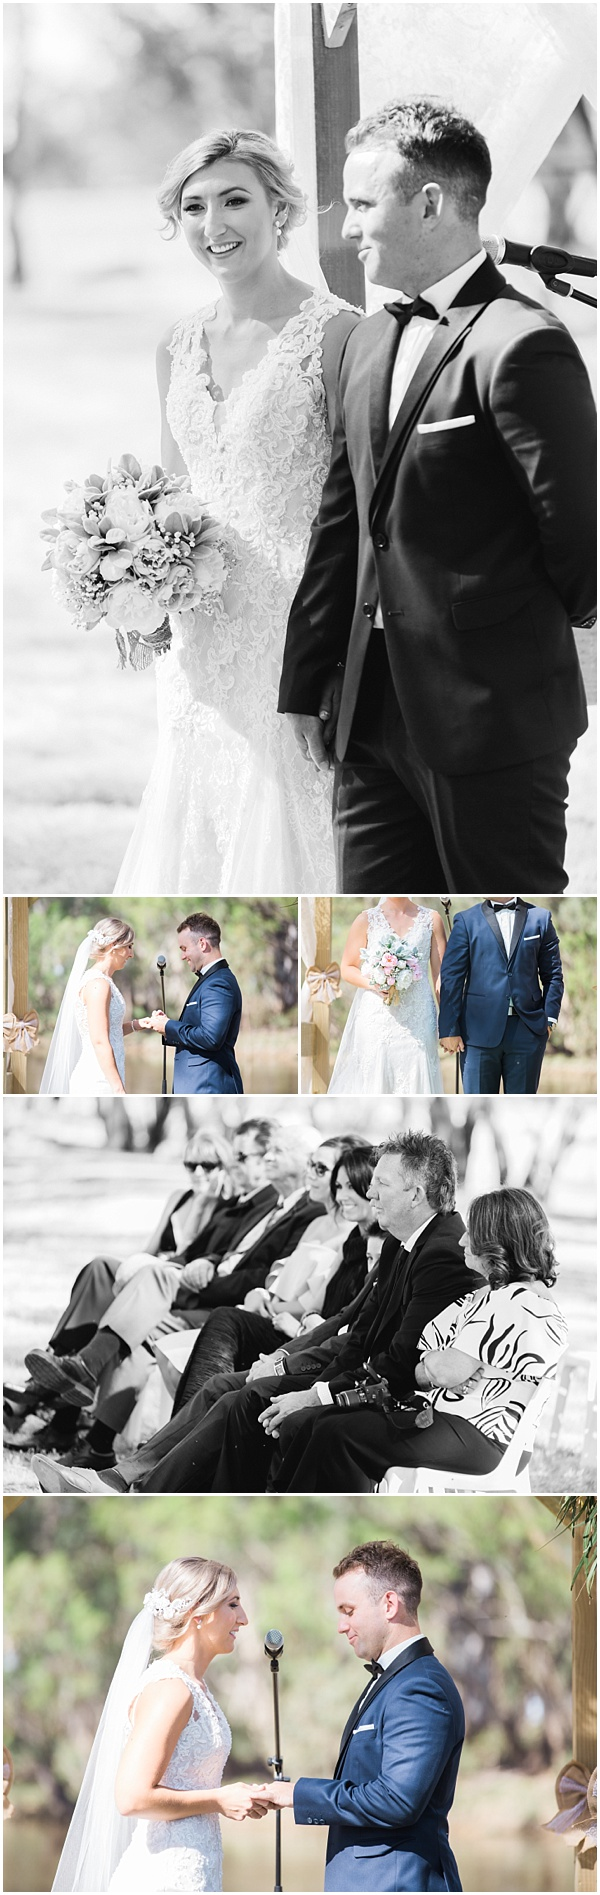 Swan Hill Country Wedding Photography_0012